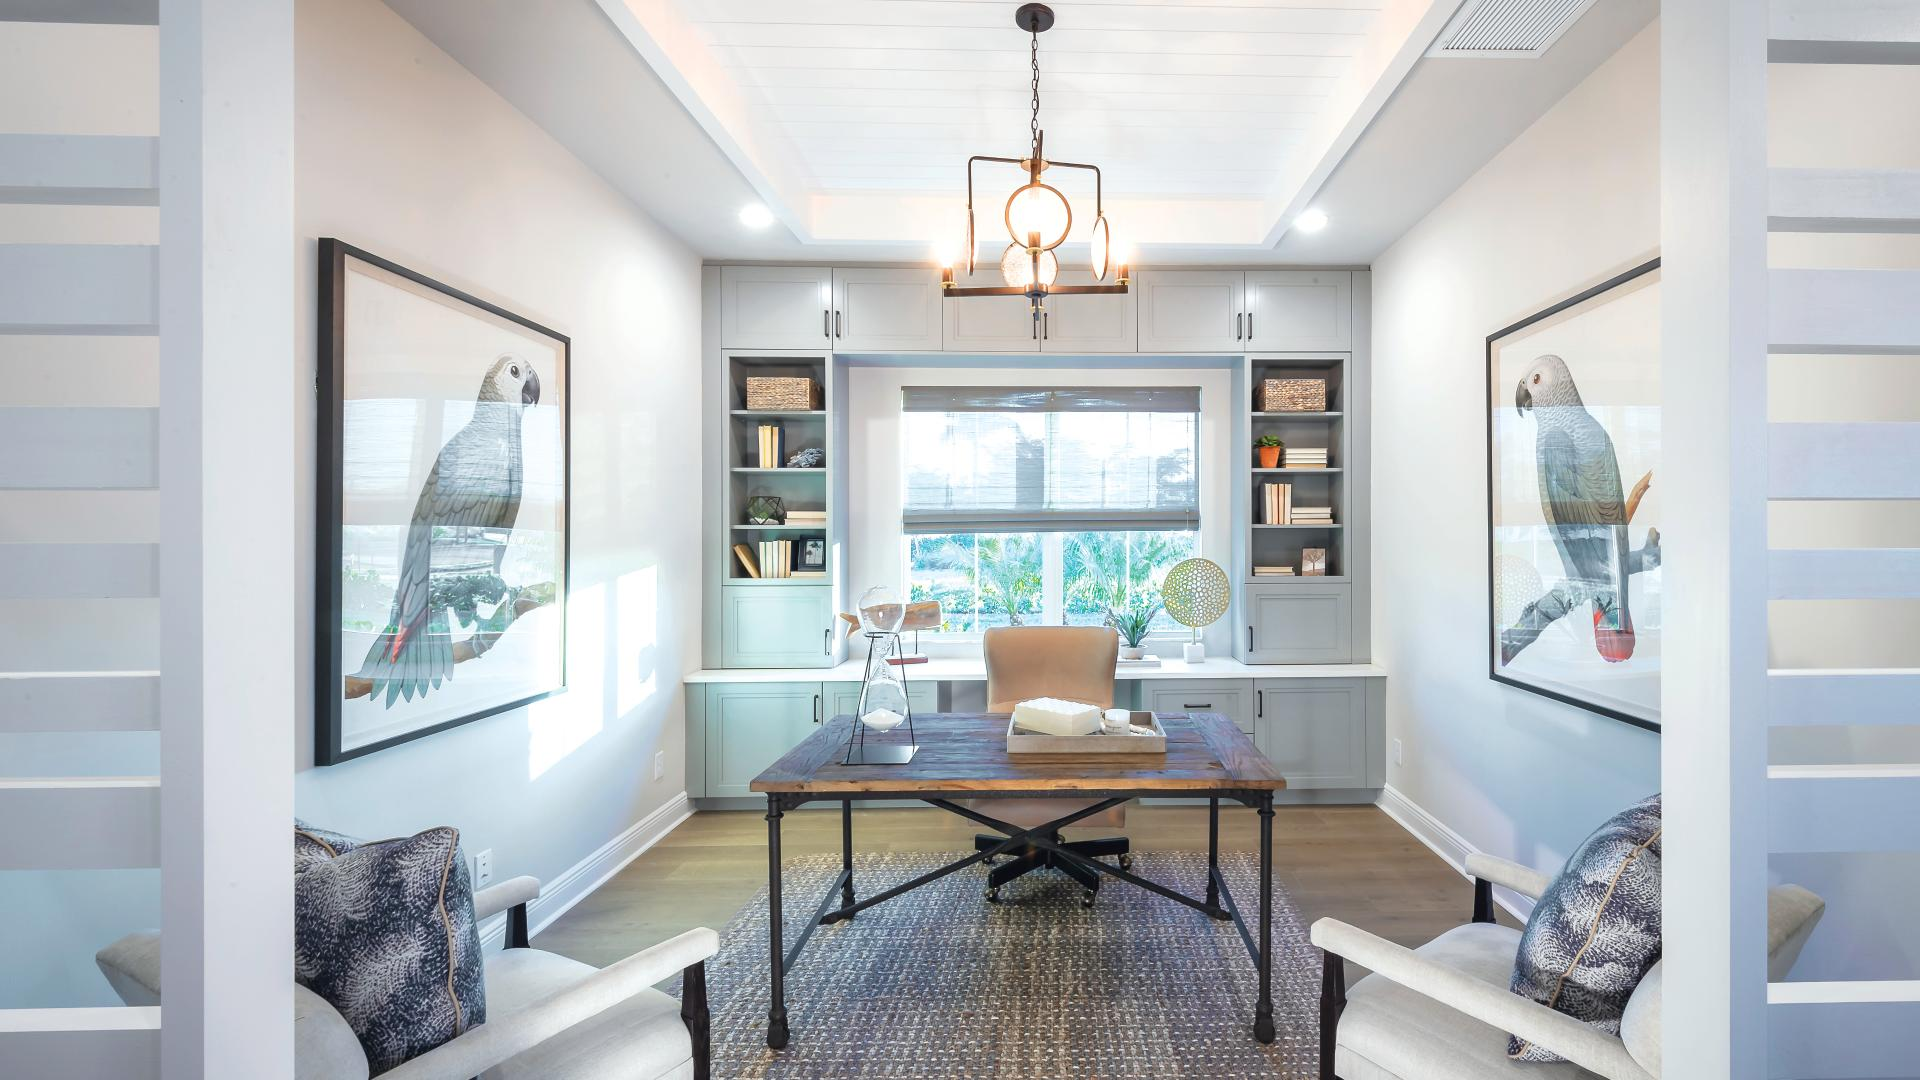 Flexible living options to personalize for your lifestyle wants and needs